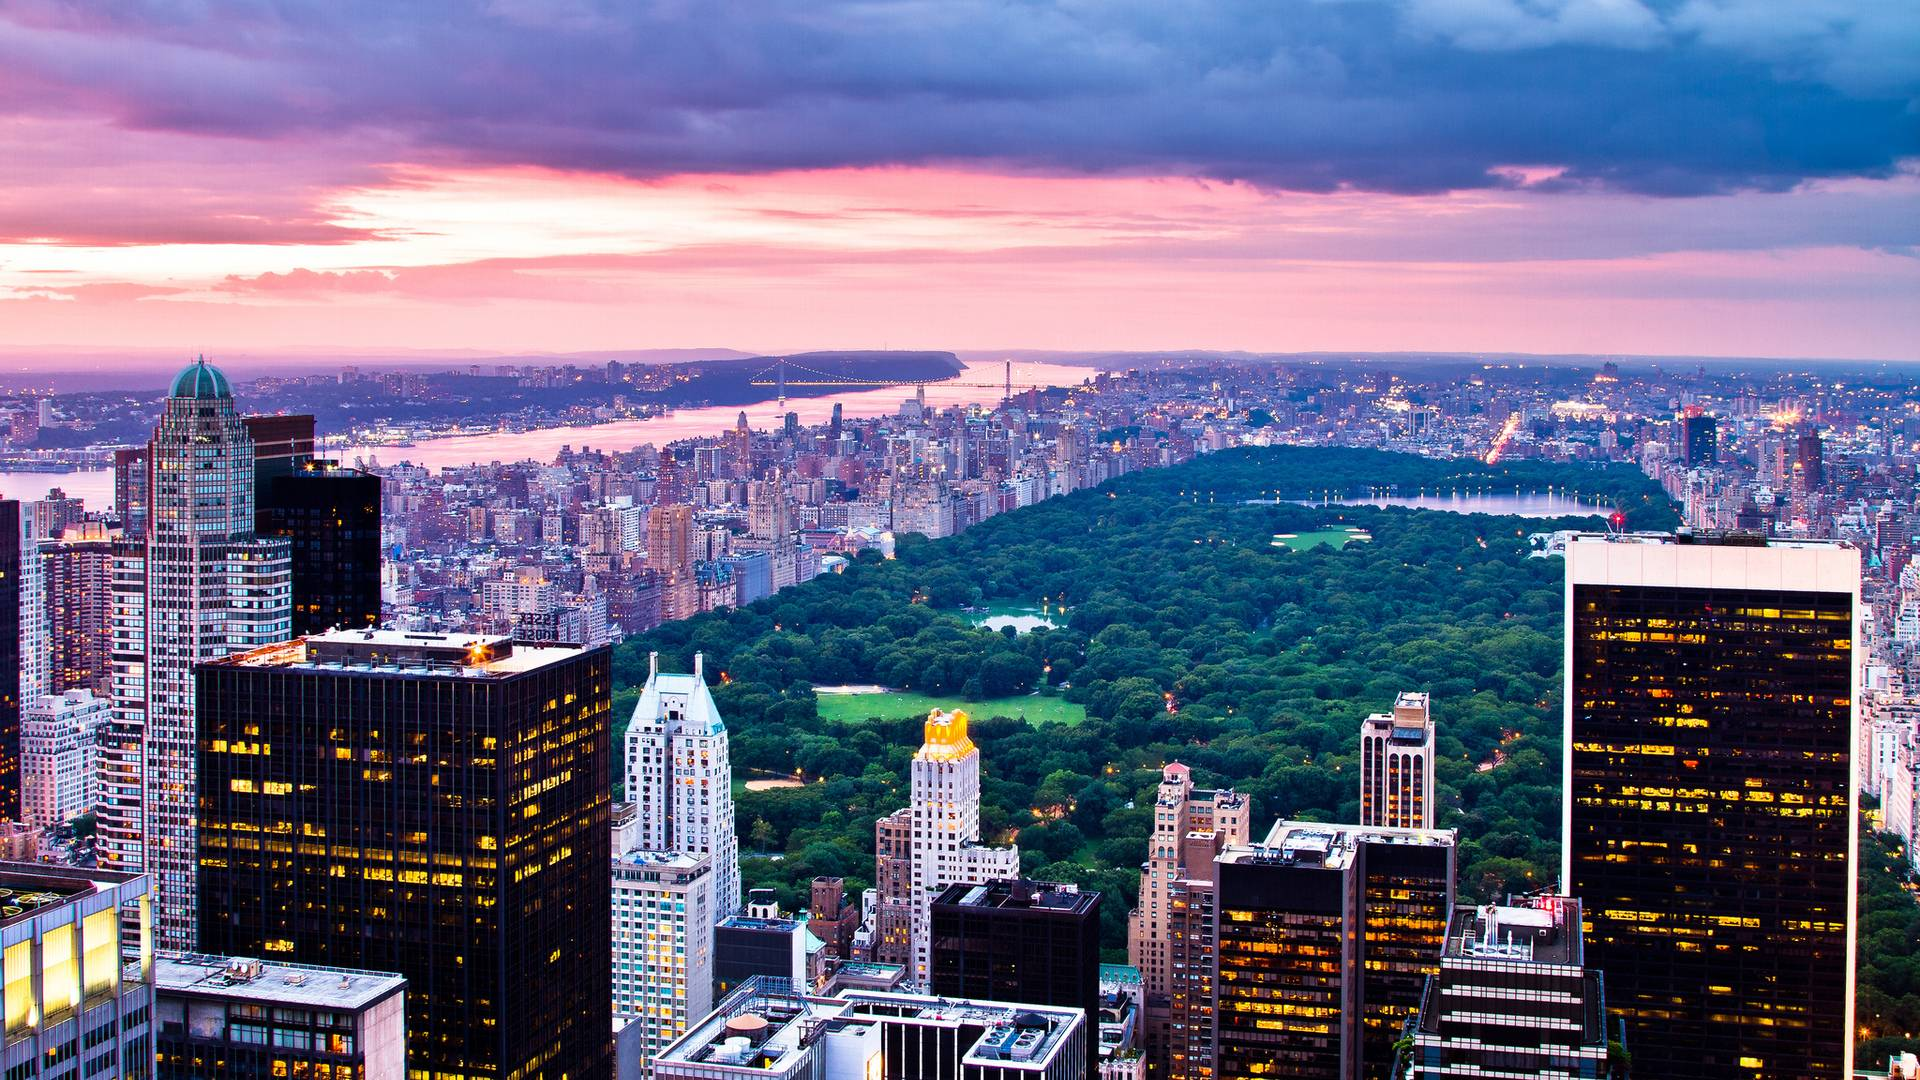 Central Park New York Wallpapers Top Free Central Park New York